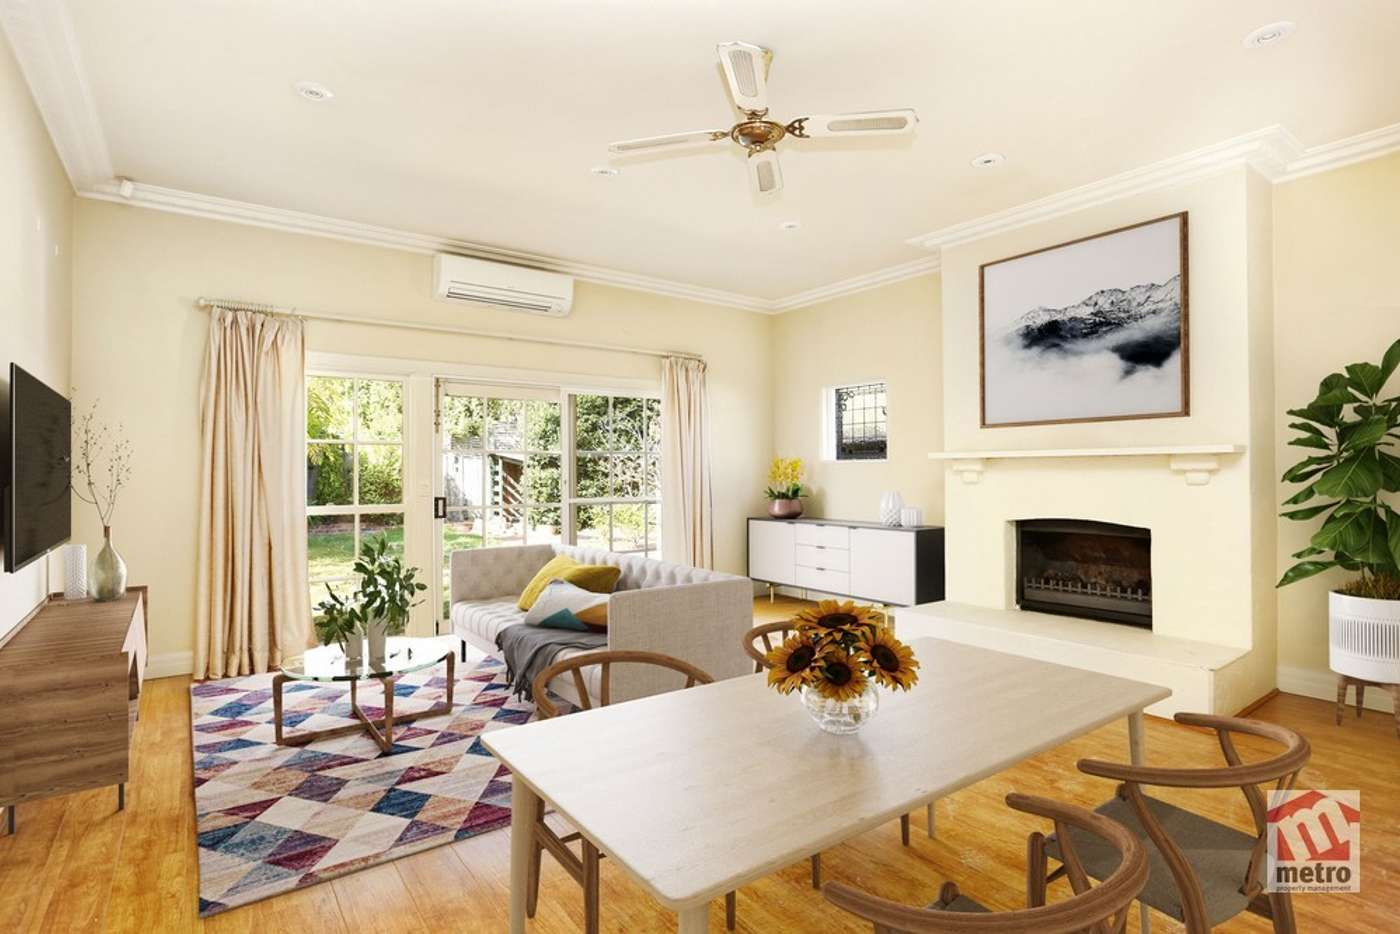 Main view of Homely house listing, 203 Glen Iris Road, Glen Iris VIC 3146